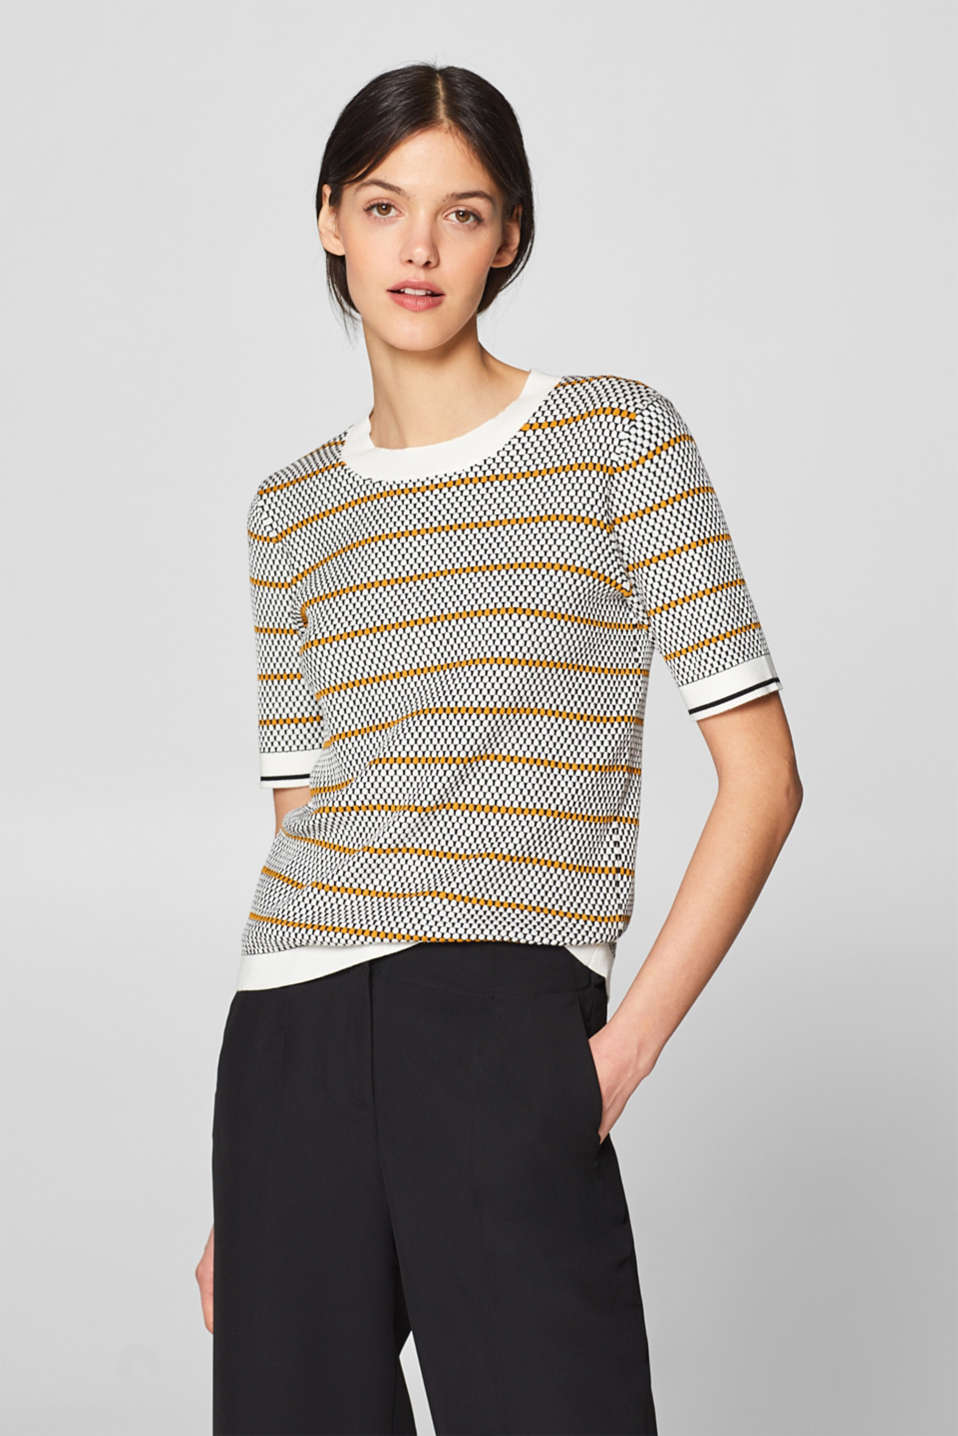 Esprit - Short-sleeve jumper with a polka dot texture